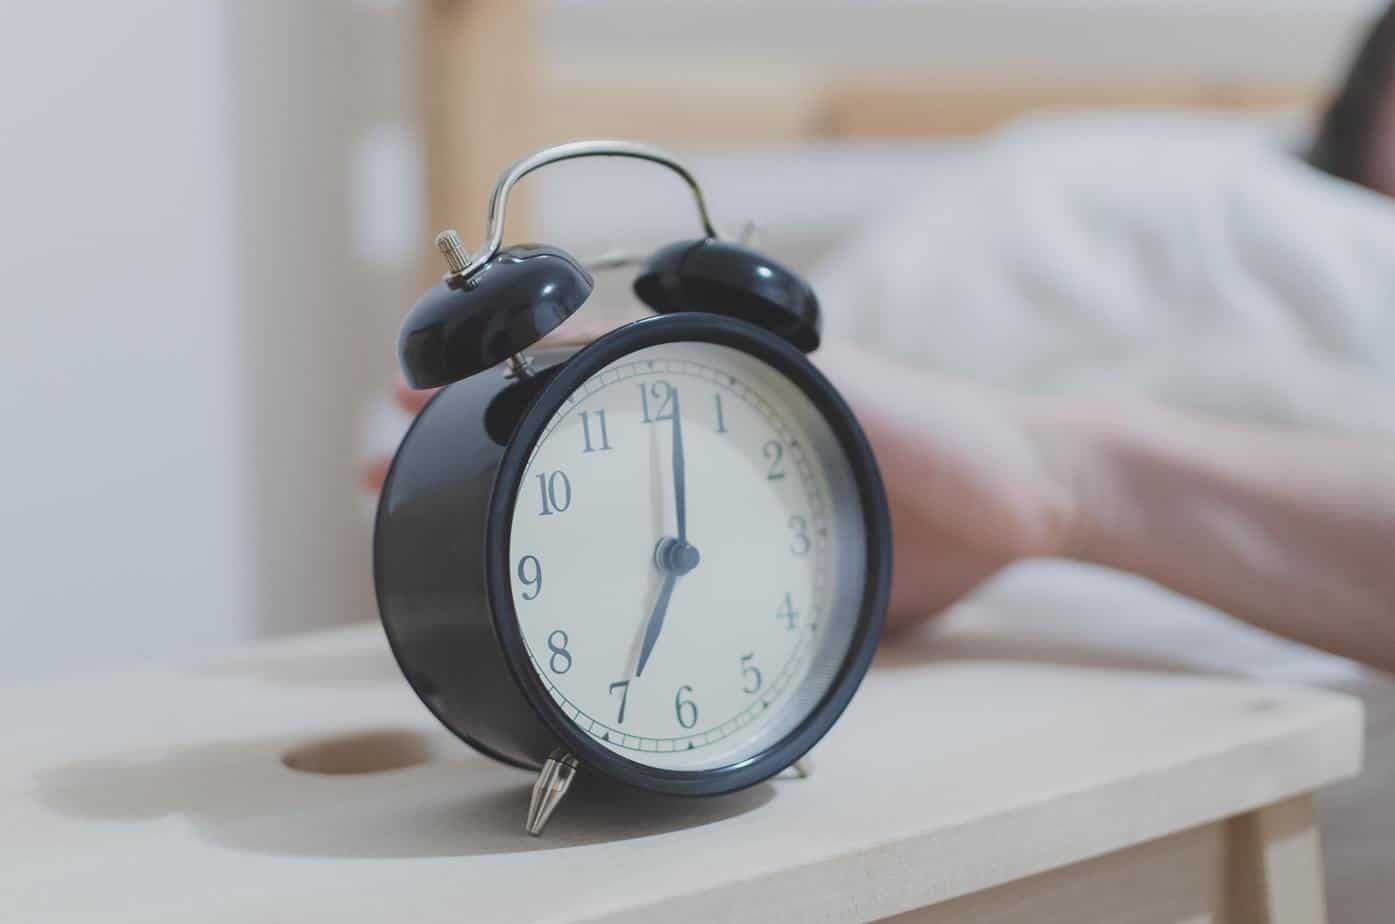 Don't let your new comfortable mattress make you late for work. Here are the best alarm clock apps for heavy sleepers.